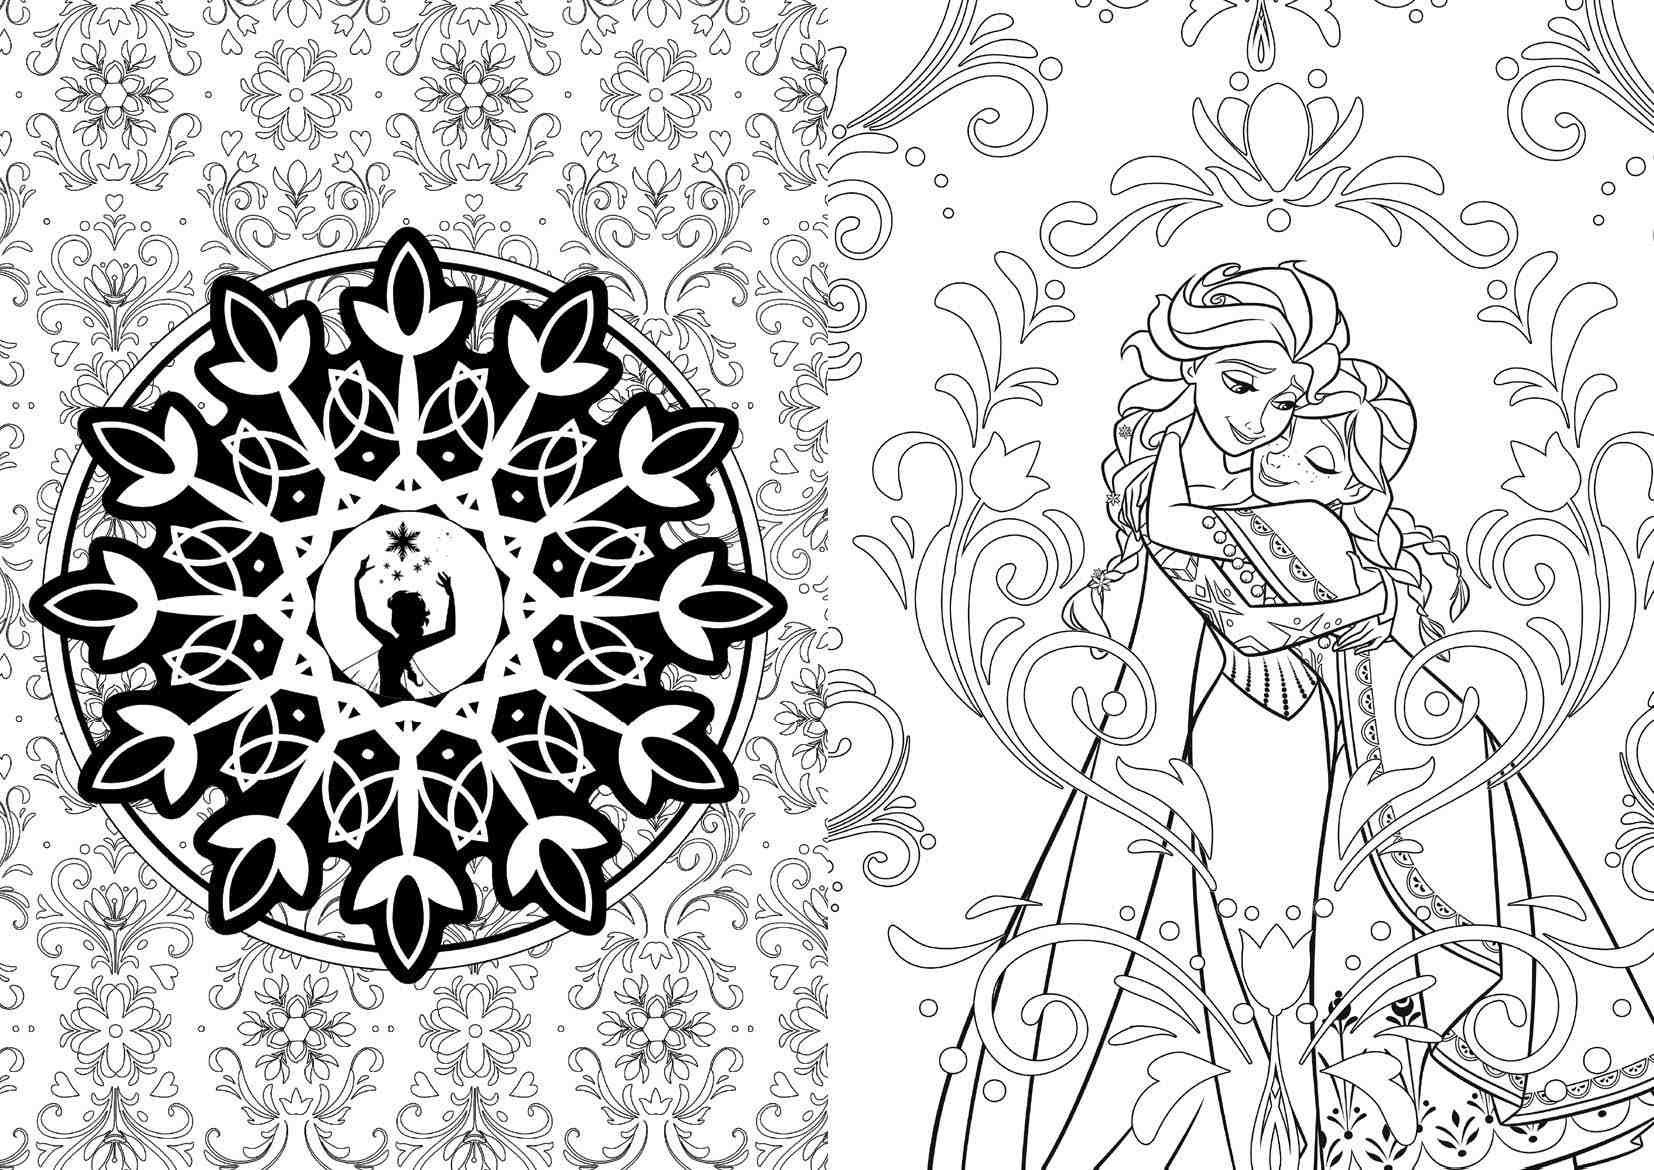 Best ideas about Adult Disney Coloring Books . Save or Pin Disney fers Coloring Books for Adults Now.